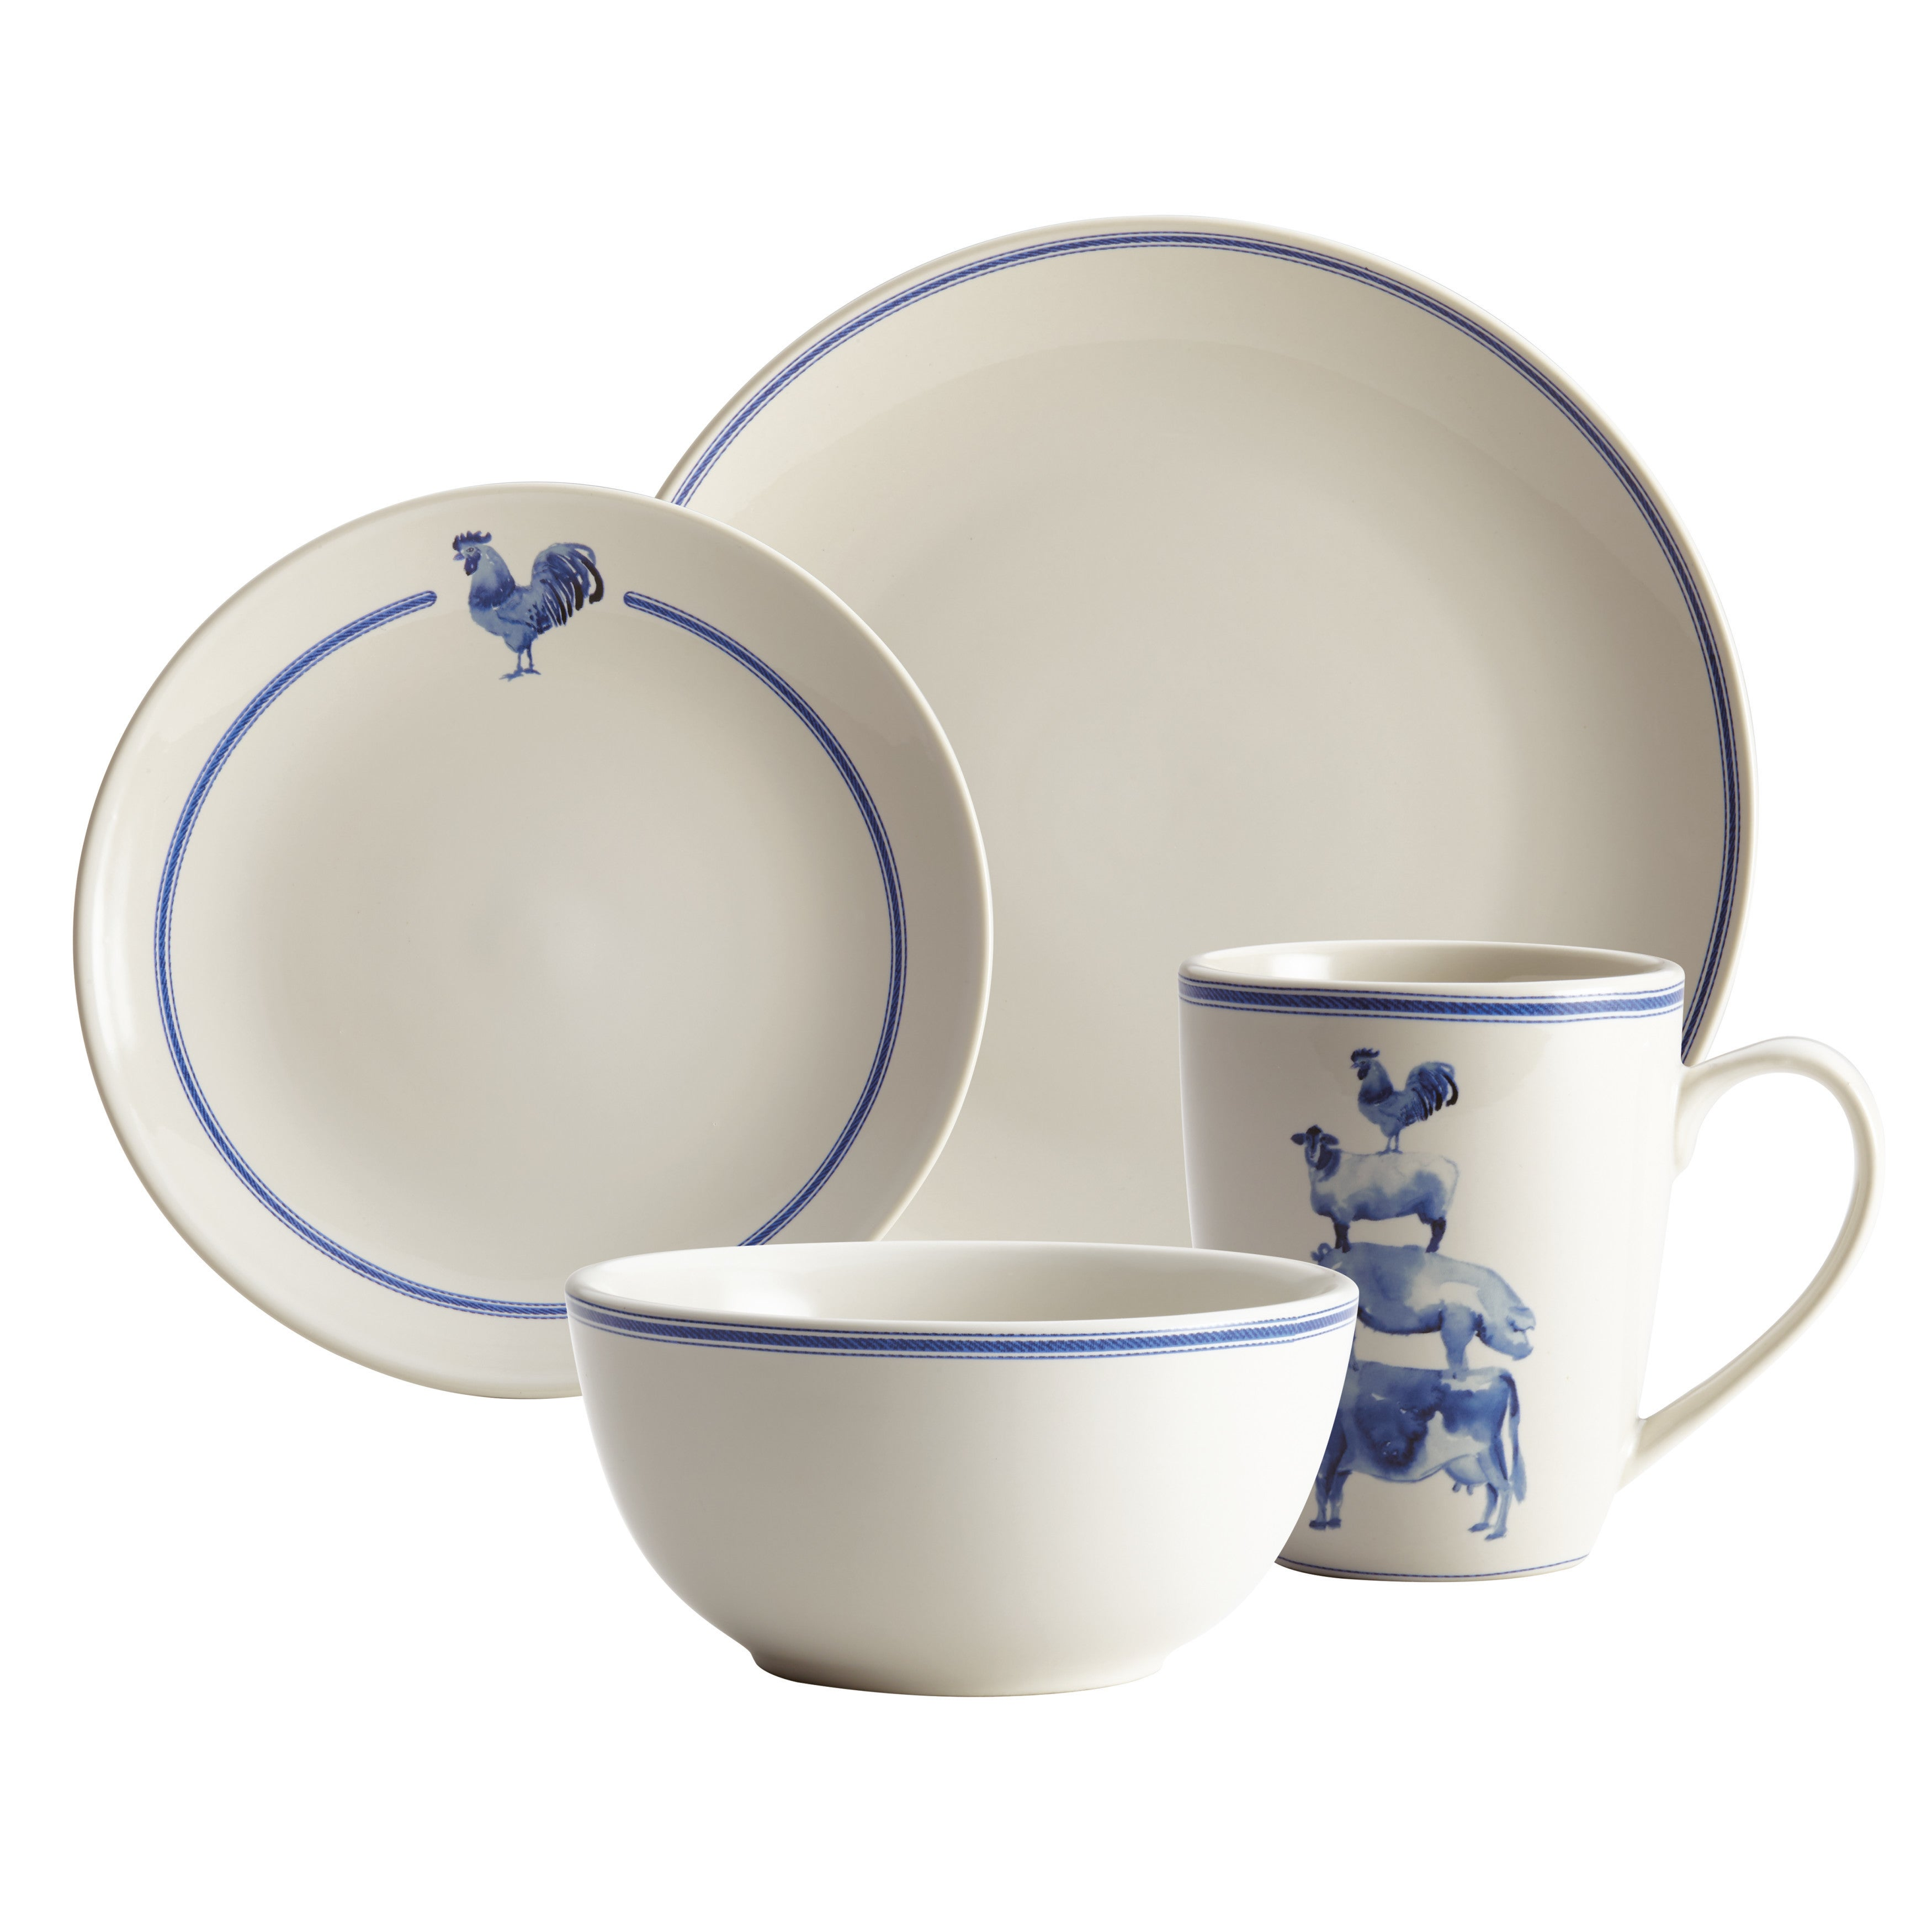 Paula Deen Country Barnyard Stoneware Dinnerware 16-Piece Set - Free Shipping Today - Overstock - 23876598  sc 1 st  Overstock.com & Paula Deen Country Barnyard Stoneware Dinnerware 16-Piece Set - Free ...